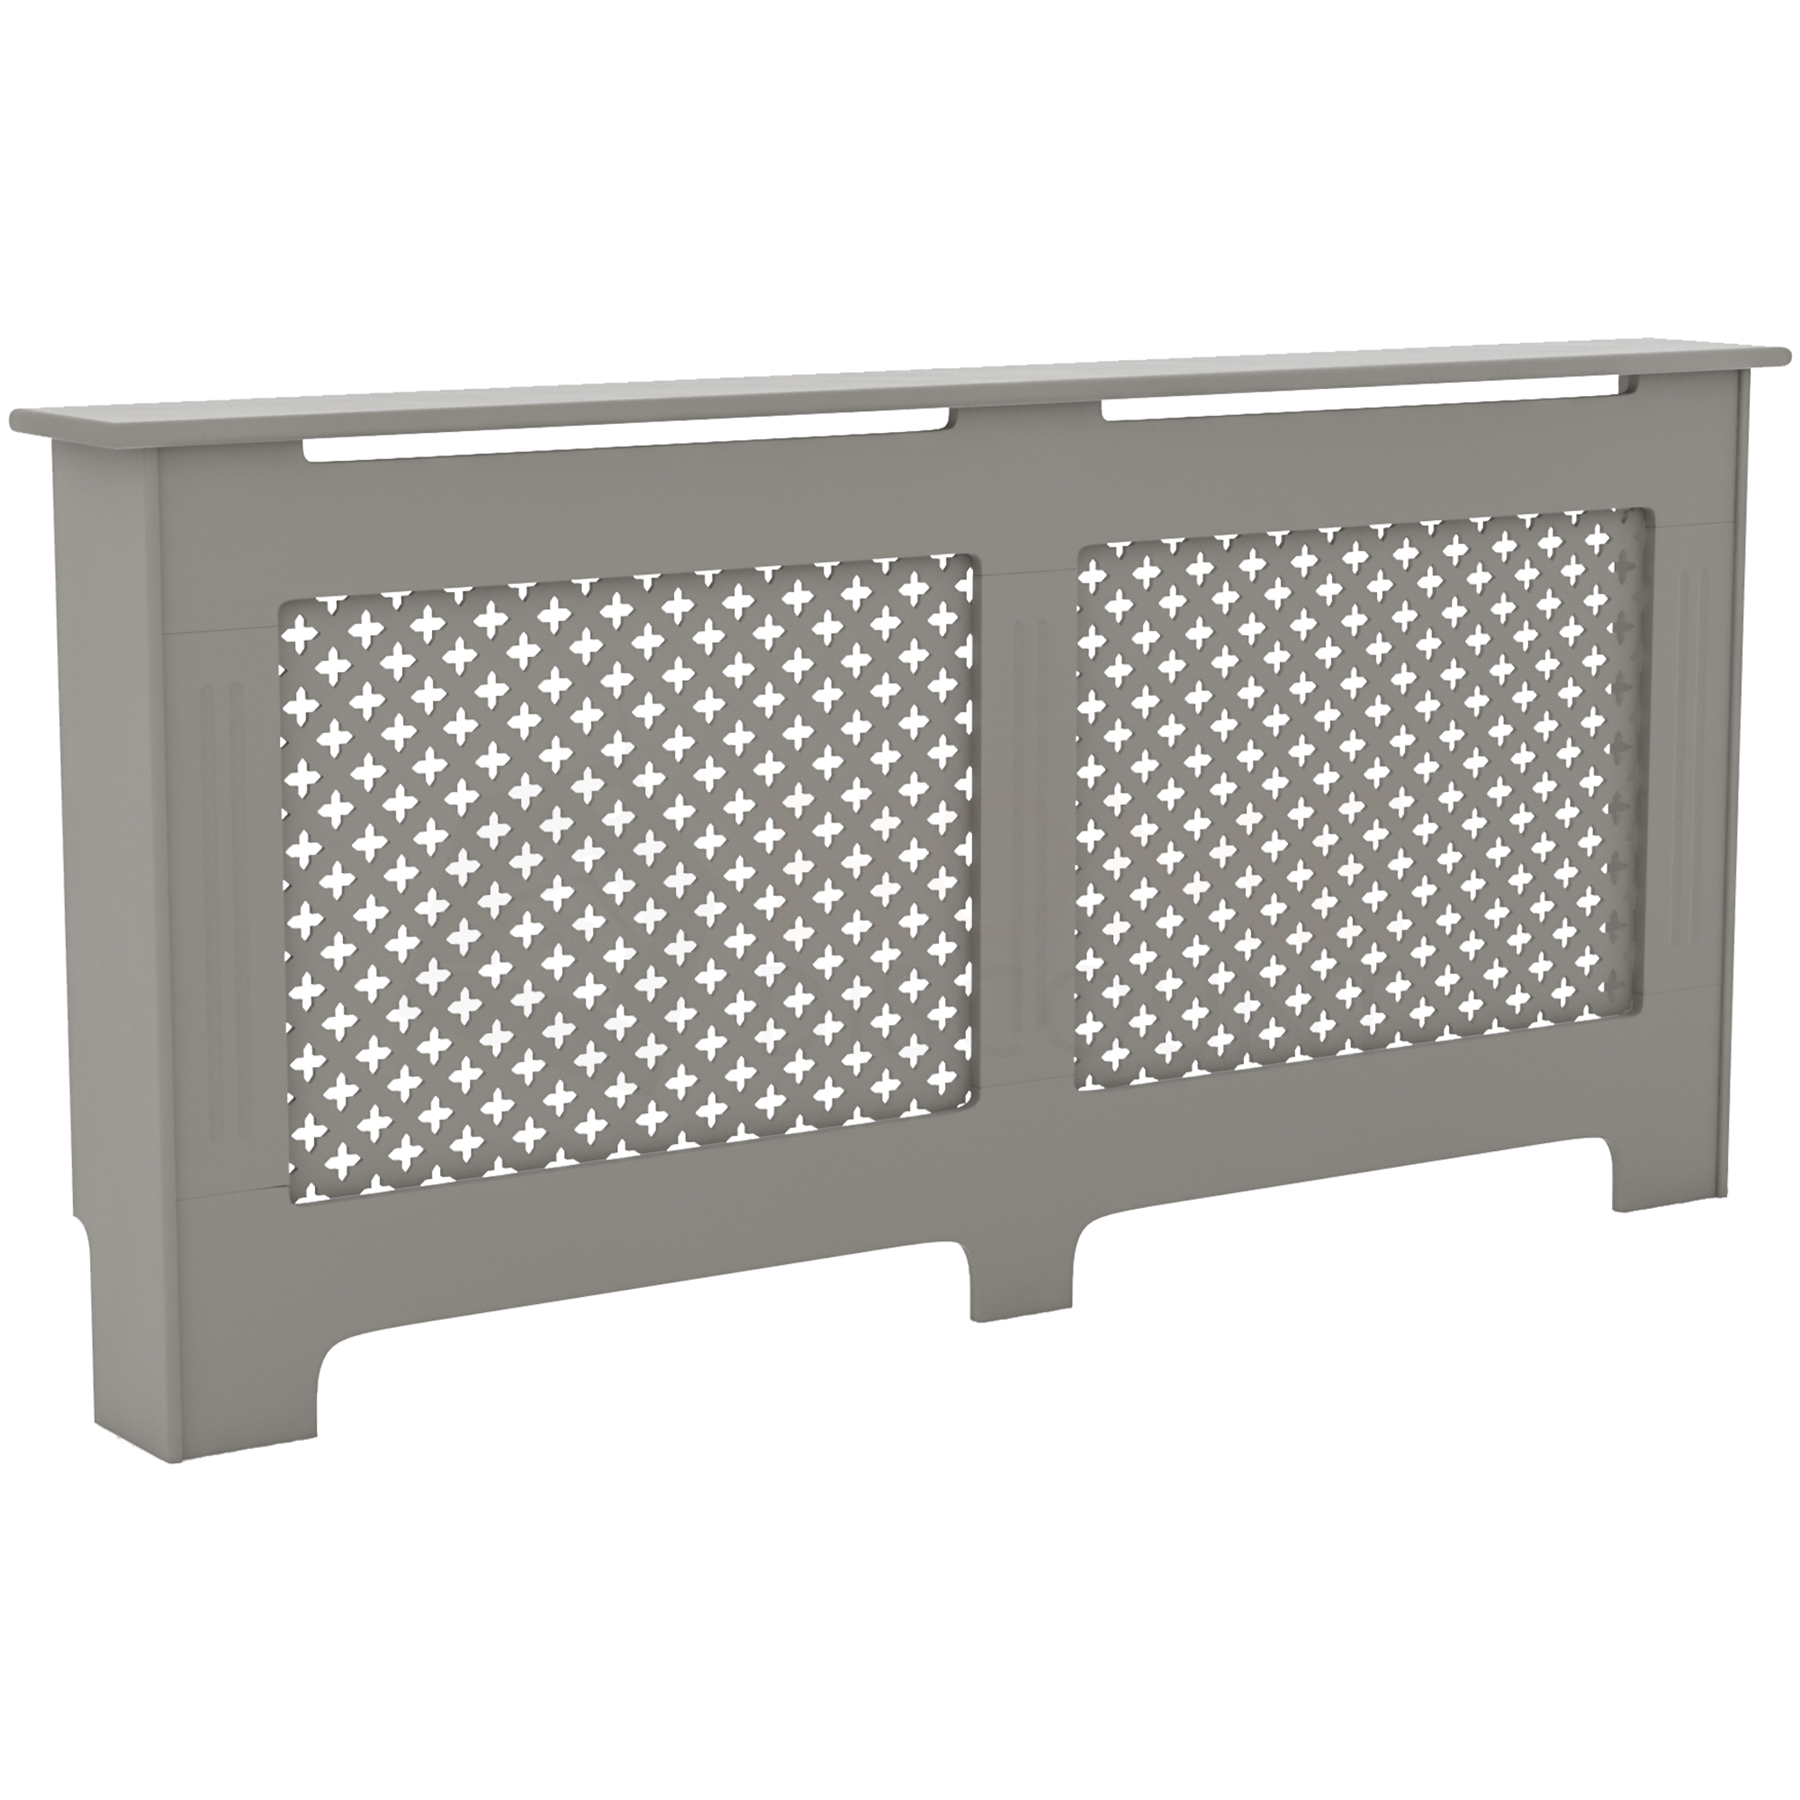 thumbnail 289 - Radiator Cover White Unfinished Modern Traditional Wood Grill Cabinet Furniture